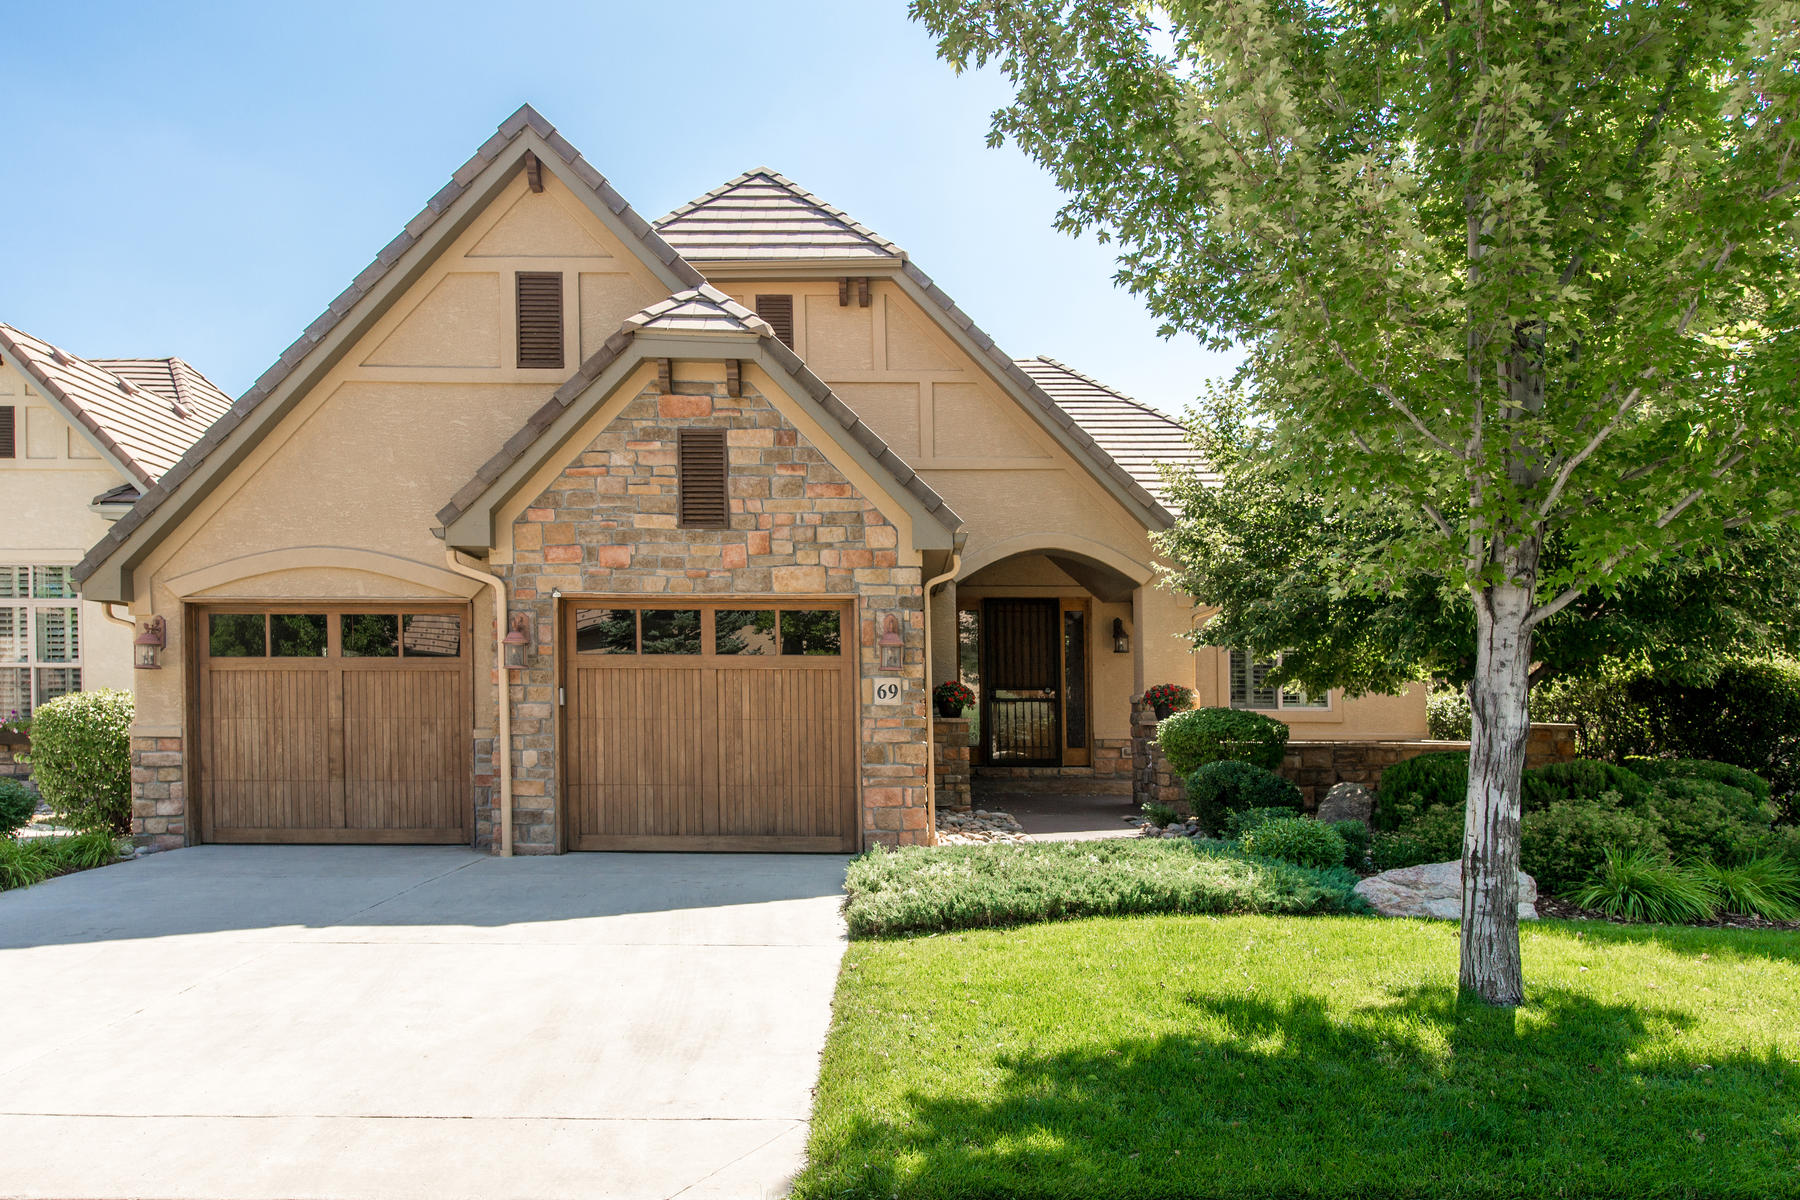 Single Family Home for Active at One-of-a-kind luxury ranch. 69 Brookhaven Dr Littleton, Colorado 80123 United States